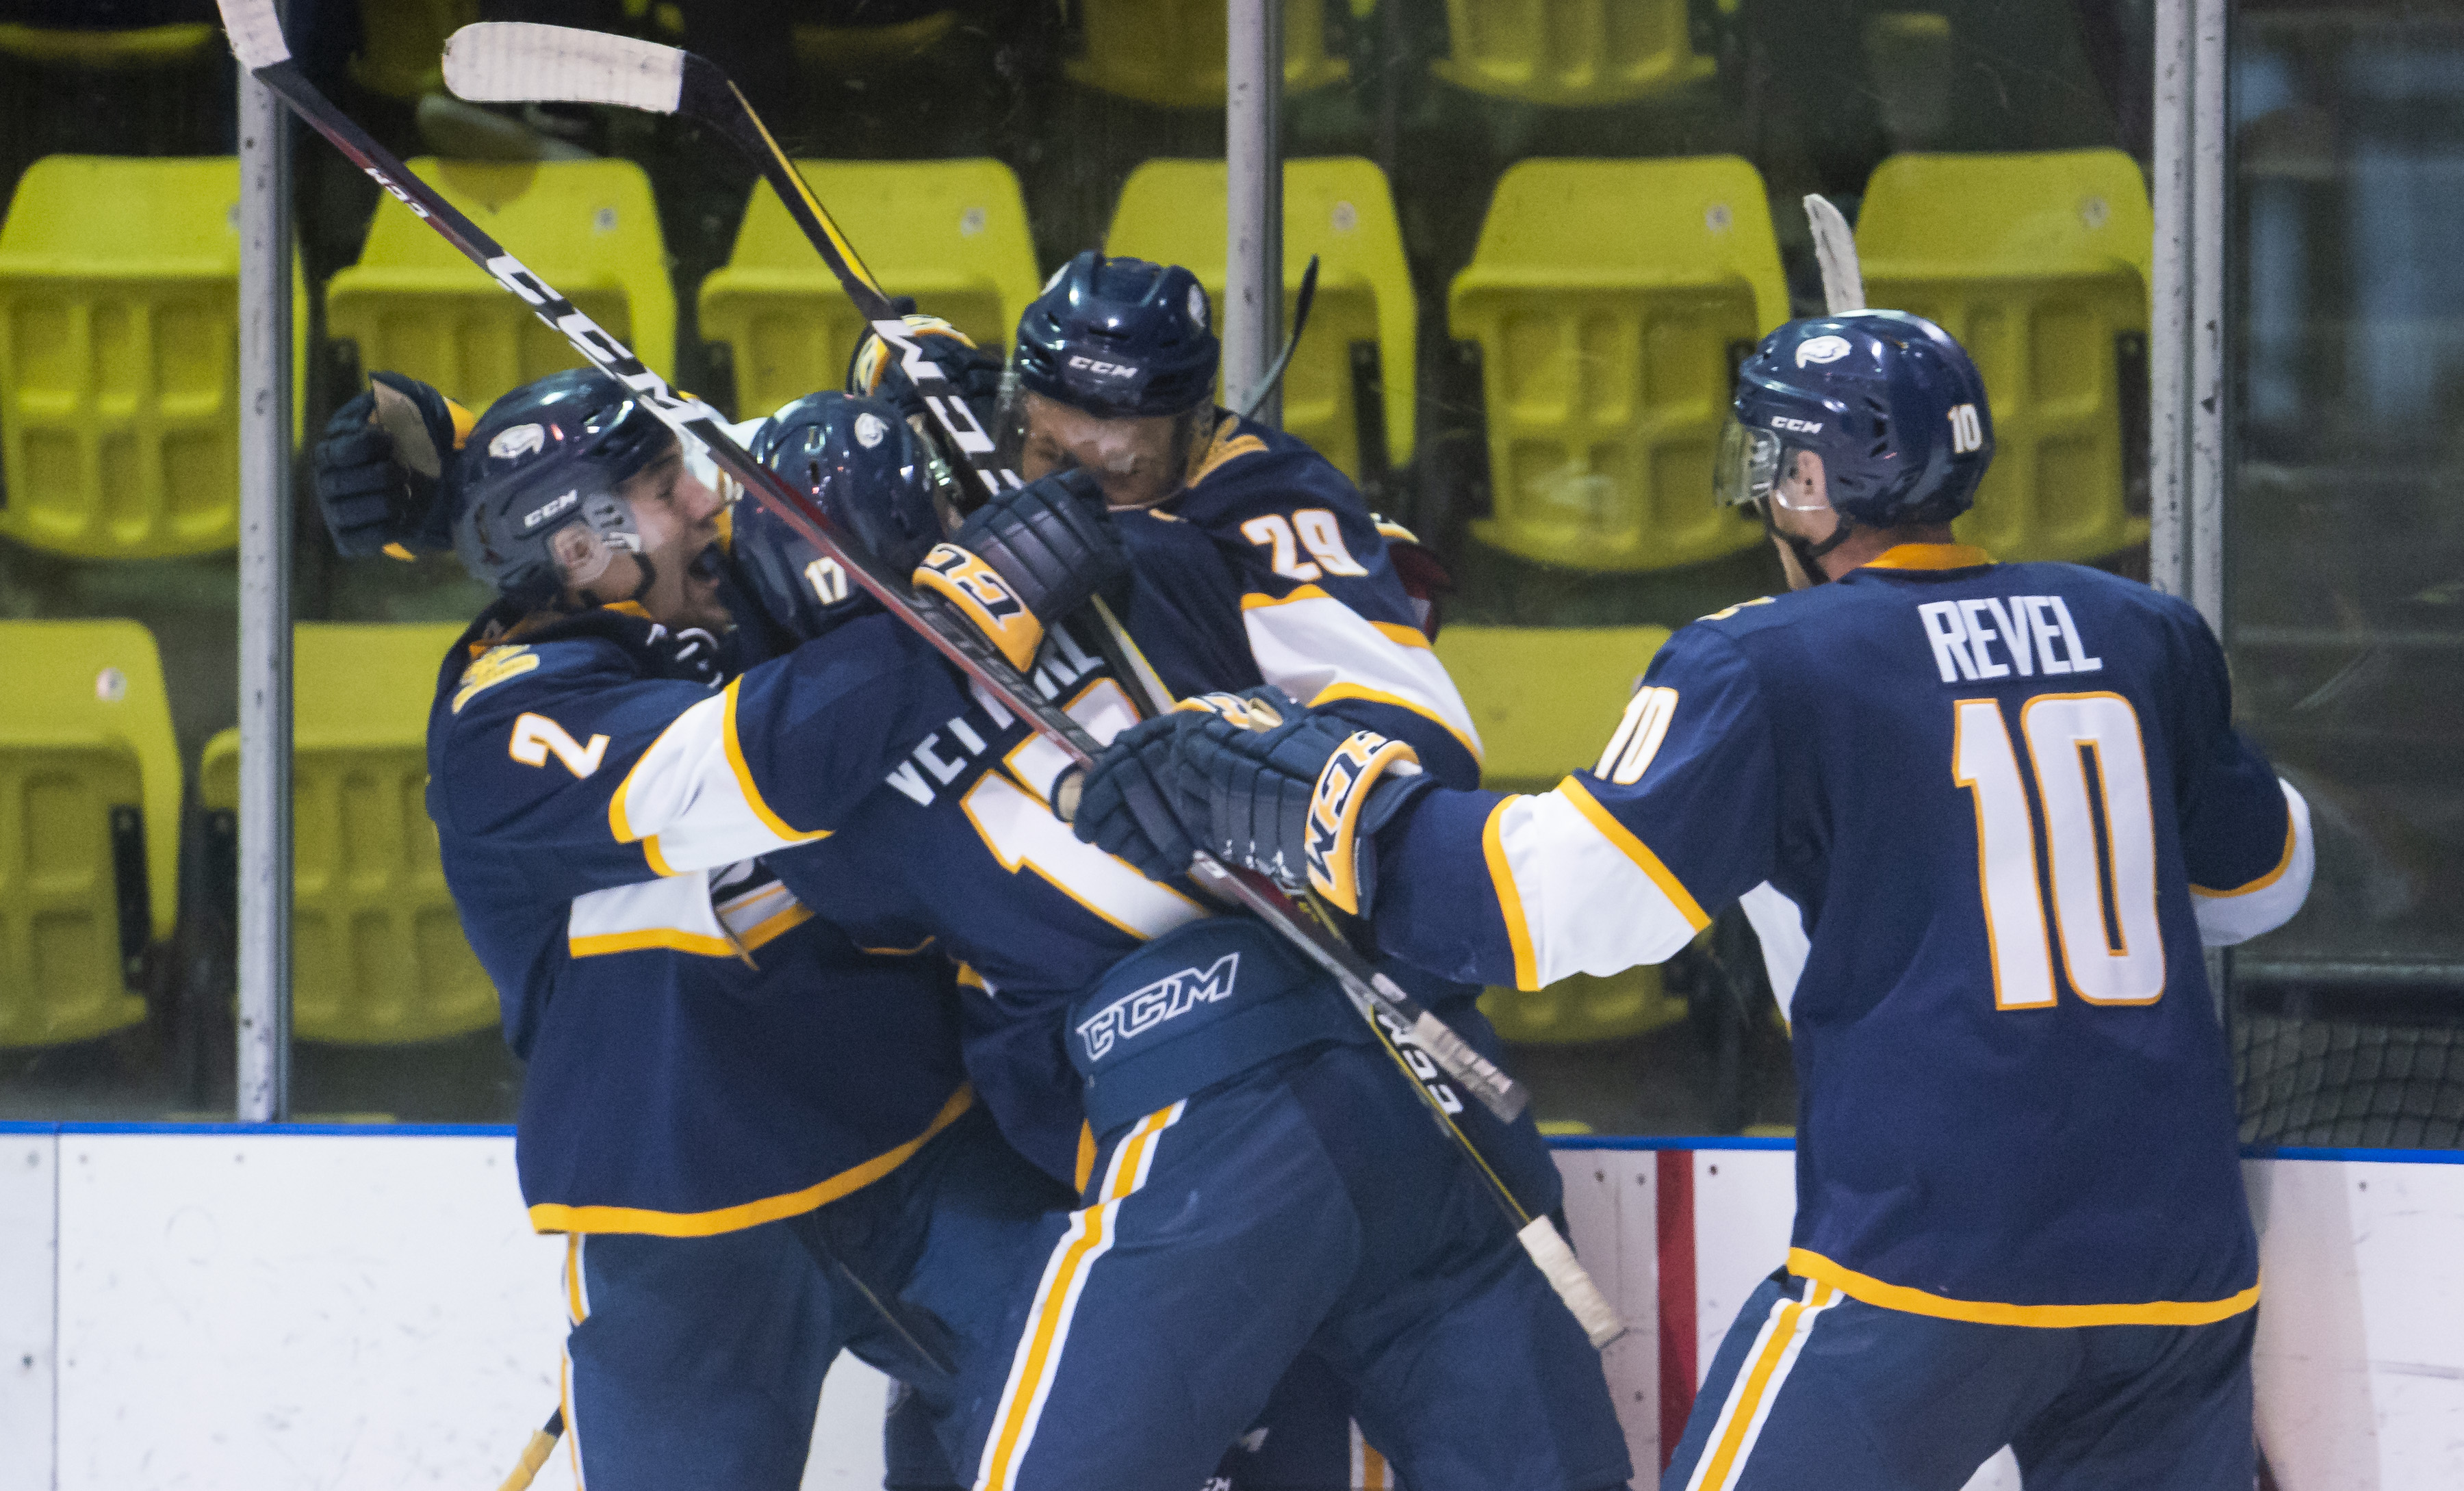 The UBC Thunderbirds celebrate a goal.